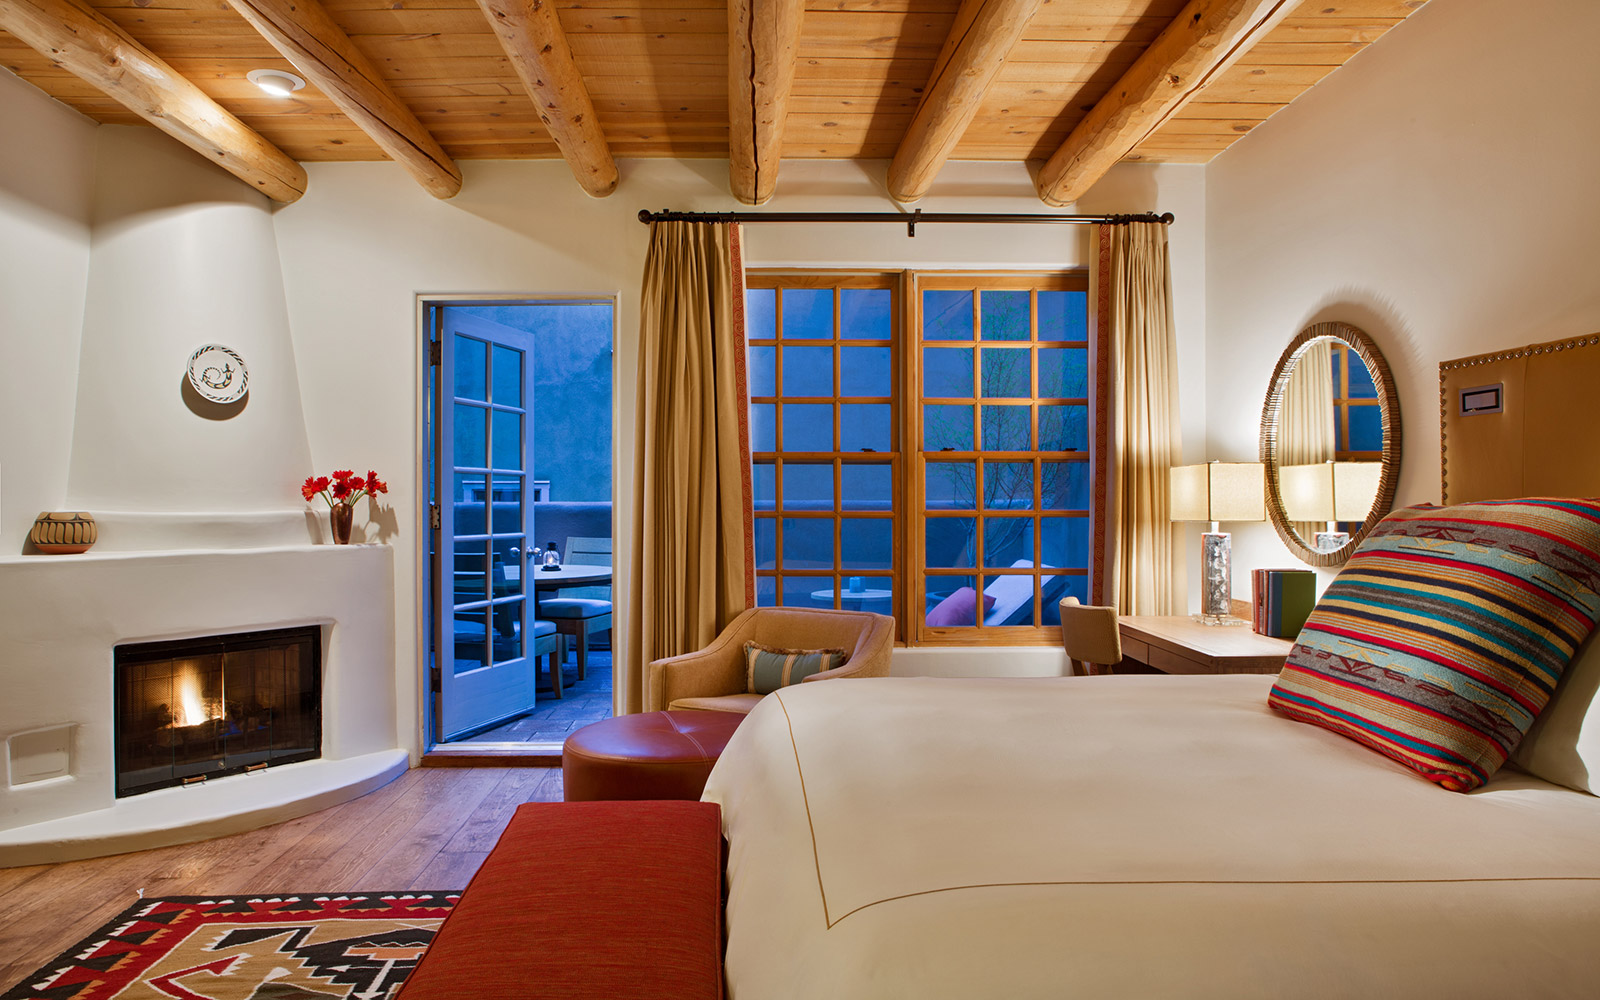 Rosewood Inn of the Anasazi in New Mexico